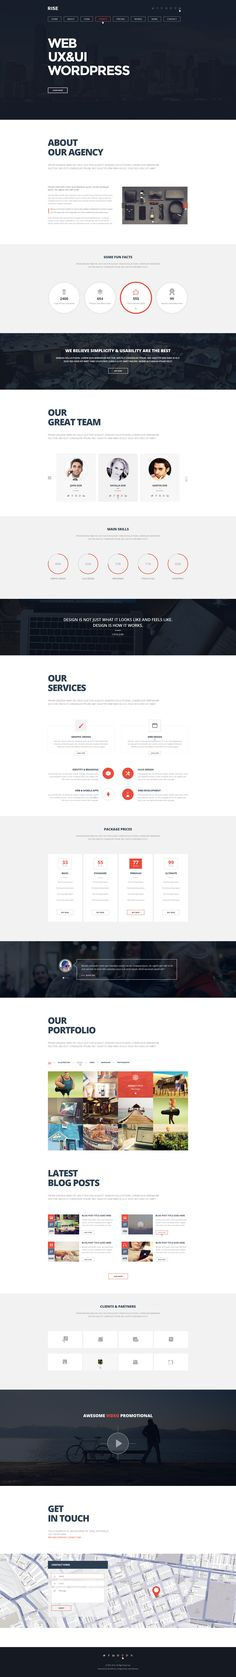 RISE OnePage Agency Portfolio Template - Wordpress Portfolio Theme - Ideas of Wordpress Portfolio Theme - RISE OnePage Agency Portfolio Template Design Web, Web Design Studio, Mobile Web Design, Portfolio Web Design, Page Design, Graphic Design, Web Layout, Layout Design, Editorial Design